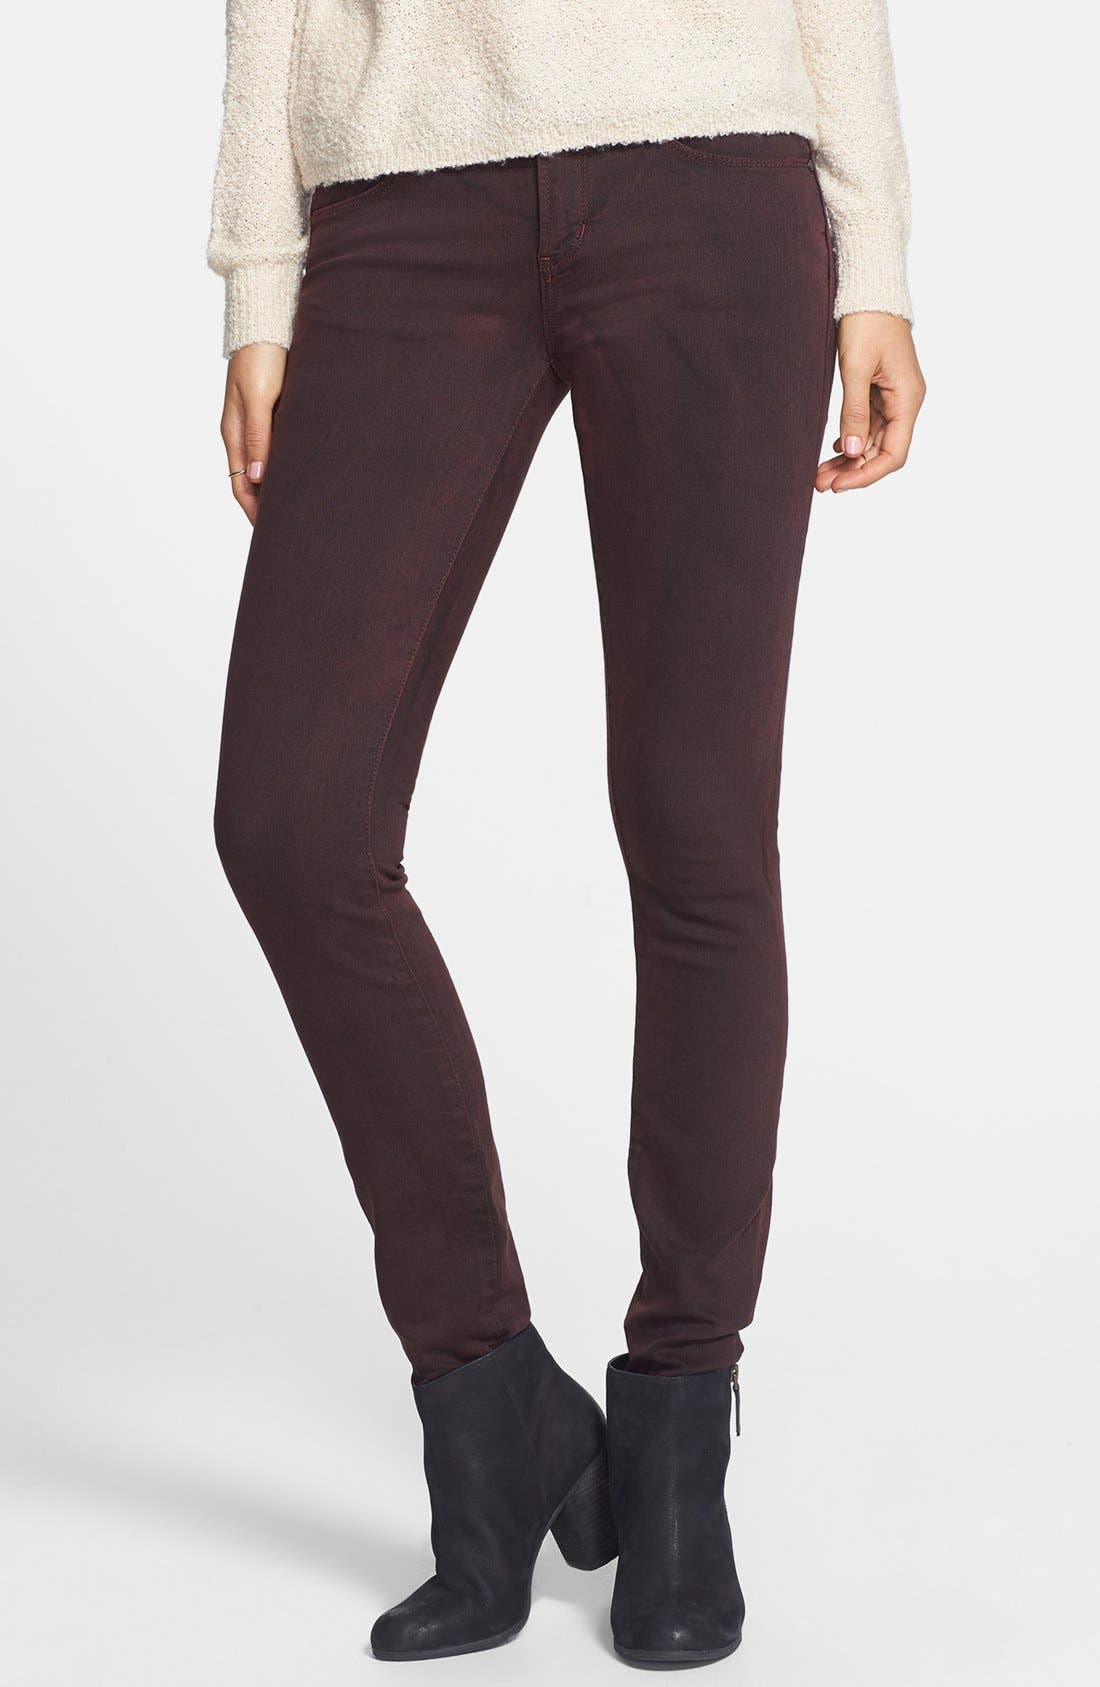 Alternate Image 1 Selected - Articles of Society 'Mya' Overdyed Skinny Jeans (Deep Red)